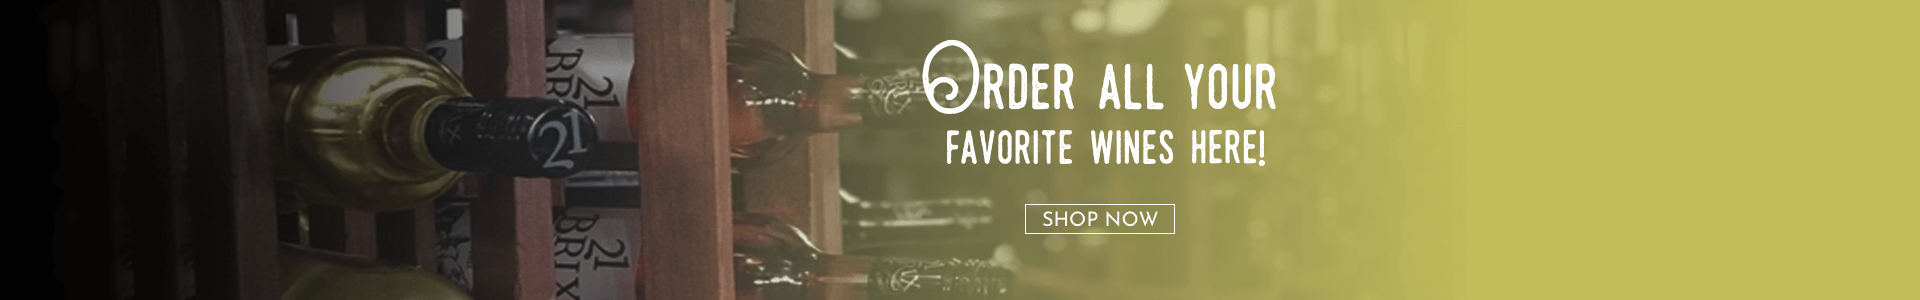 Order All Your Favorite Wines Here - Shop Now!